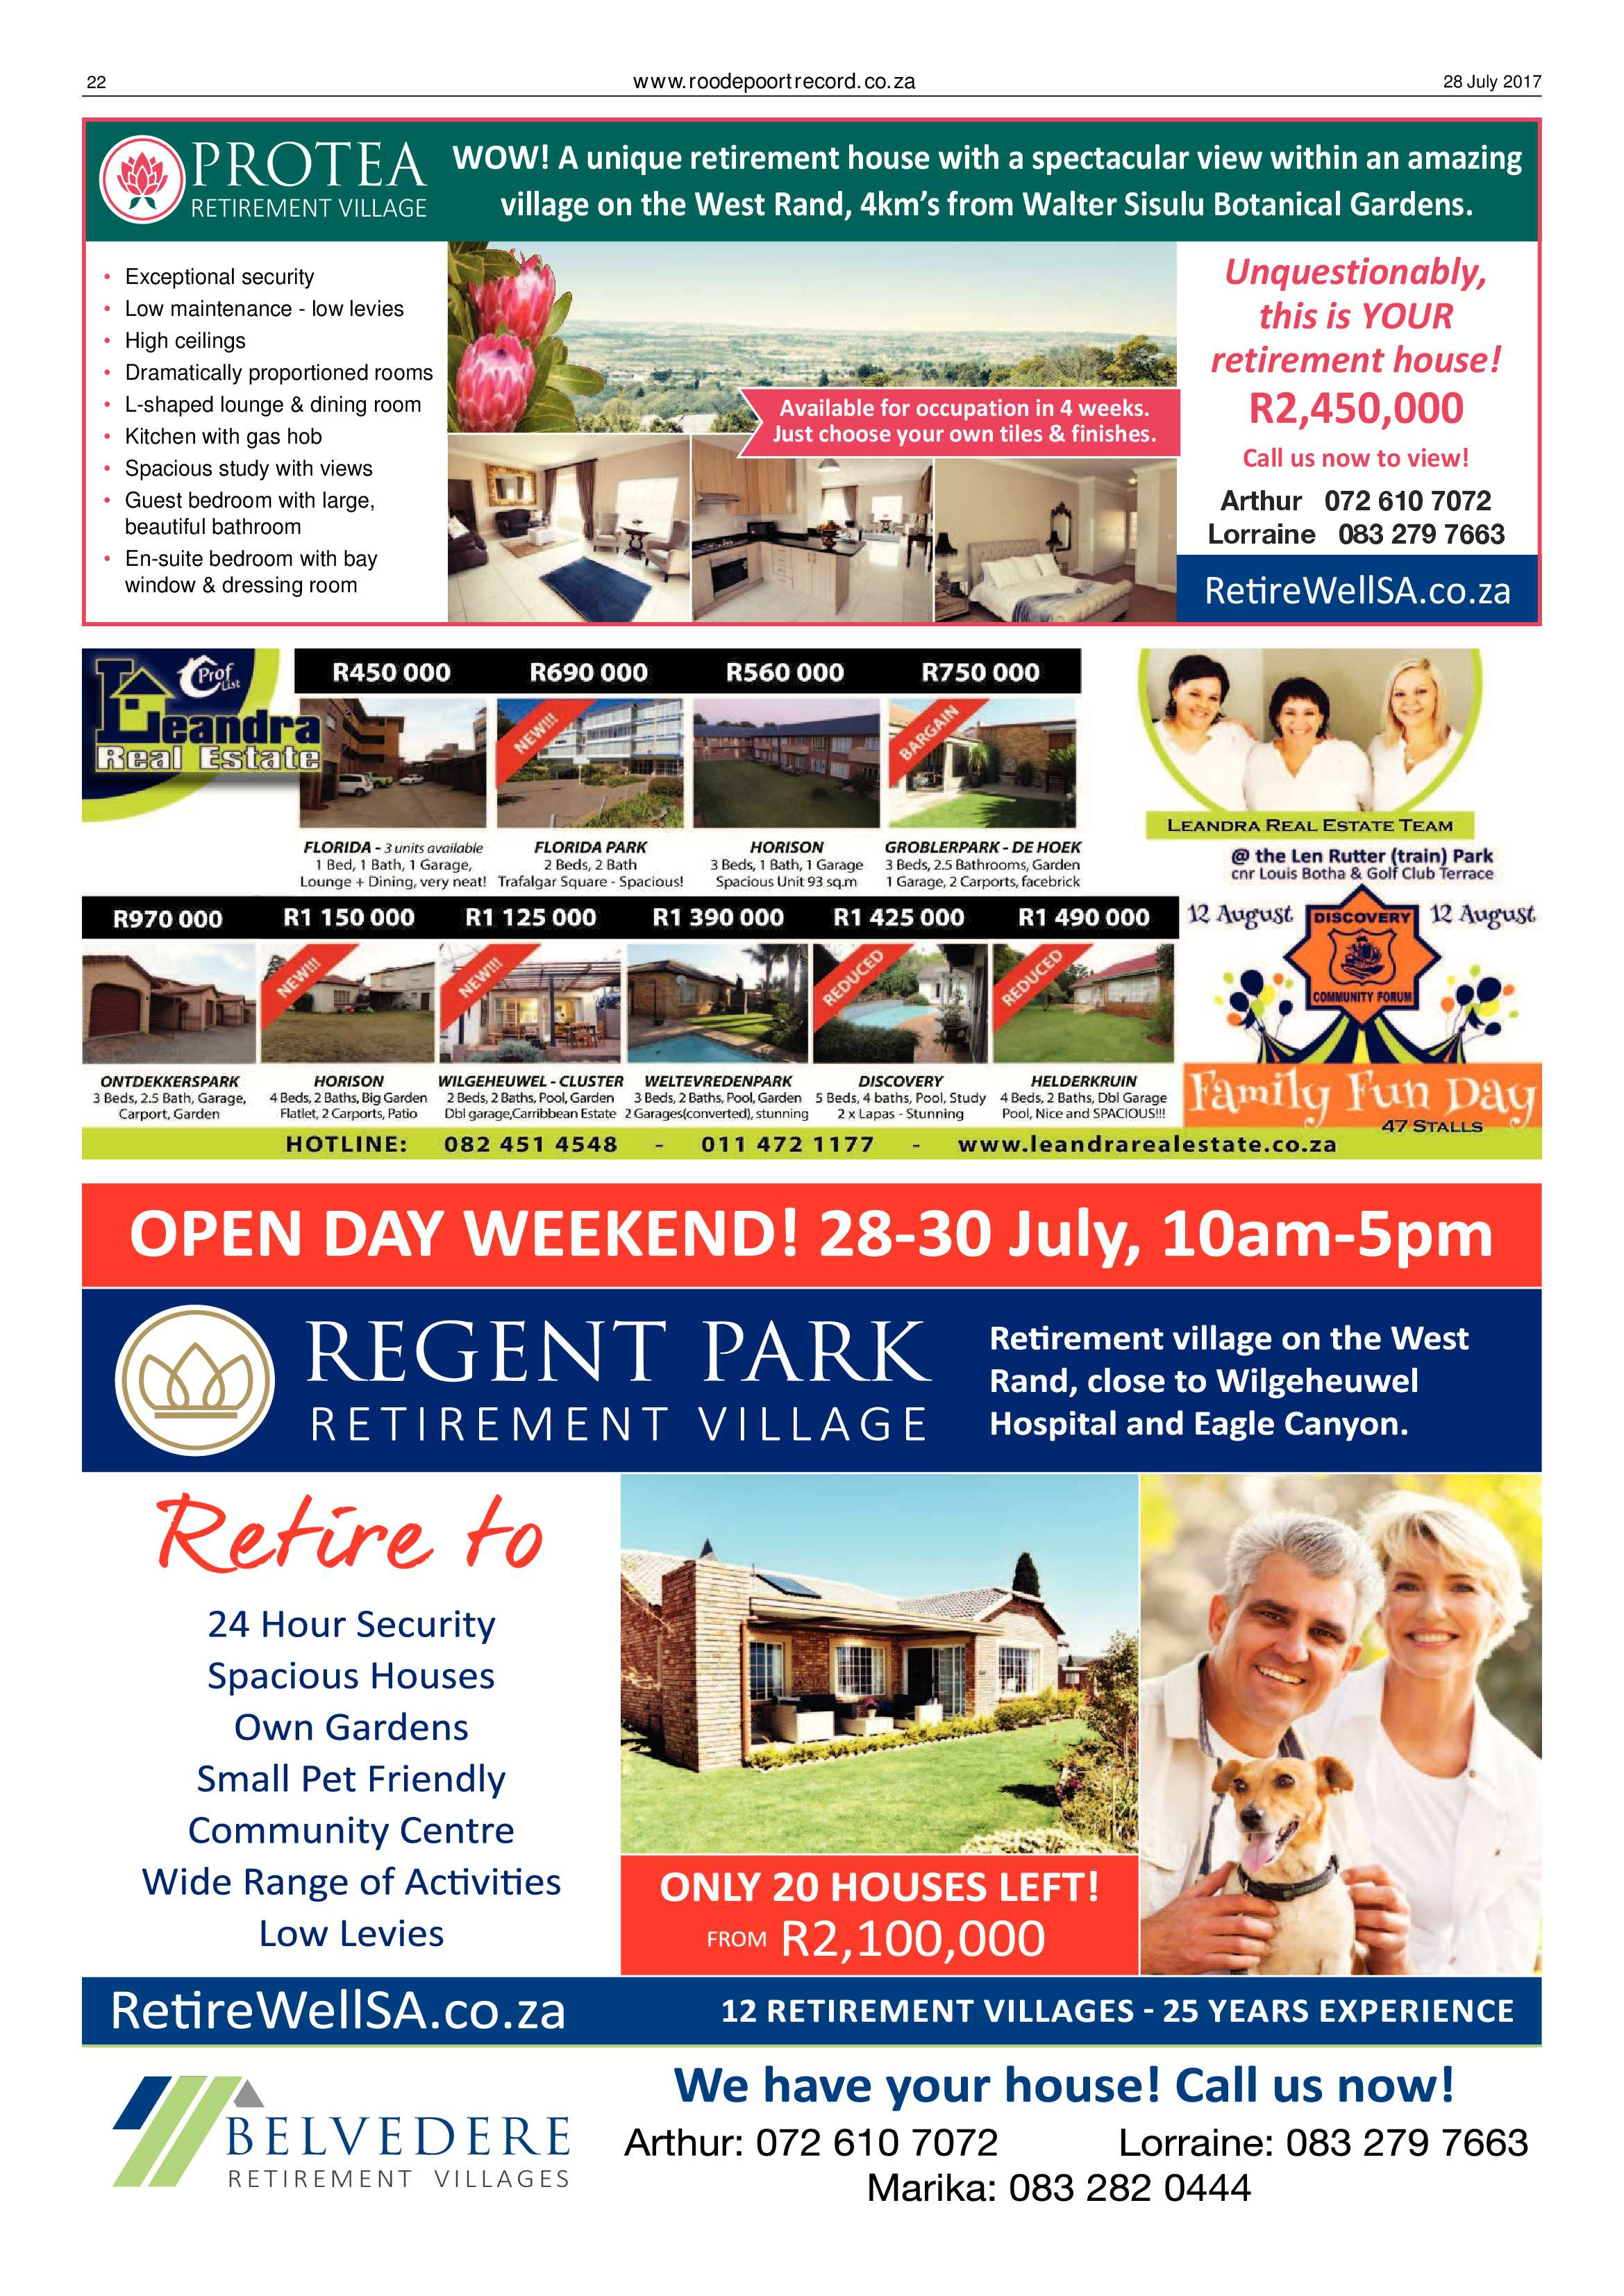 roodepoort-record-28-july-2017-epapers-page-22